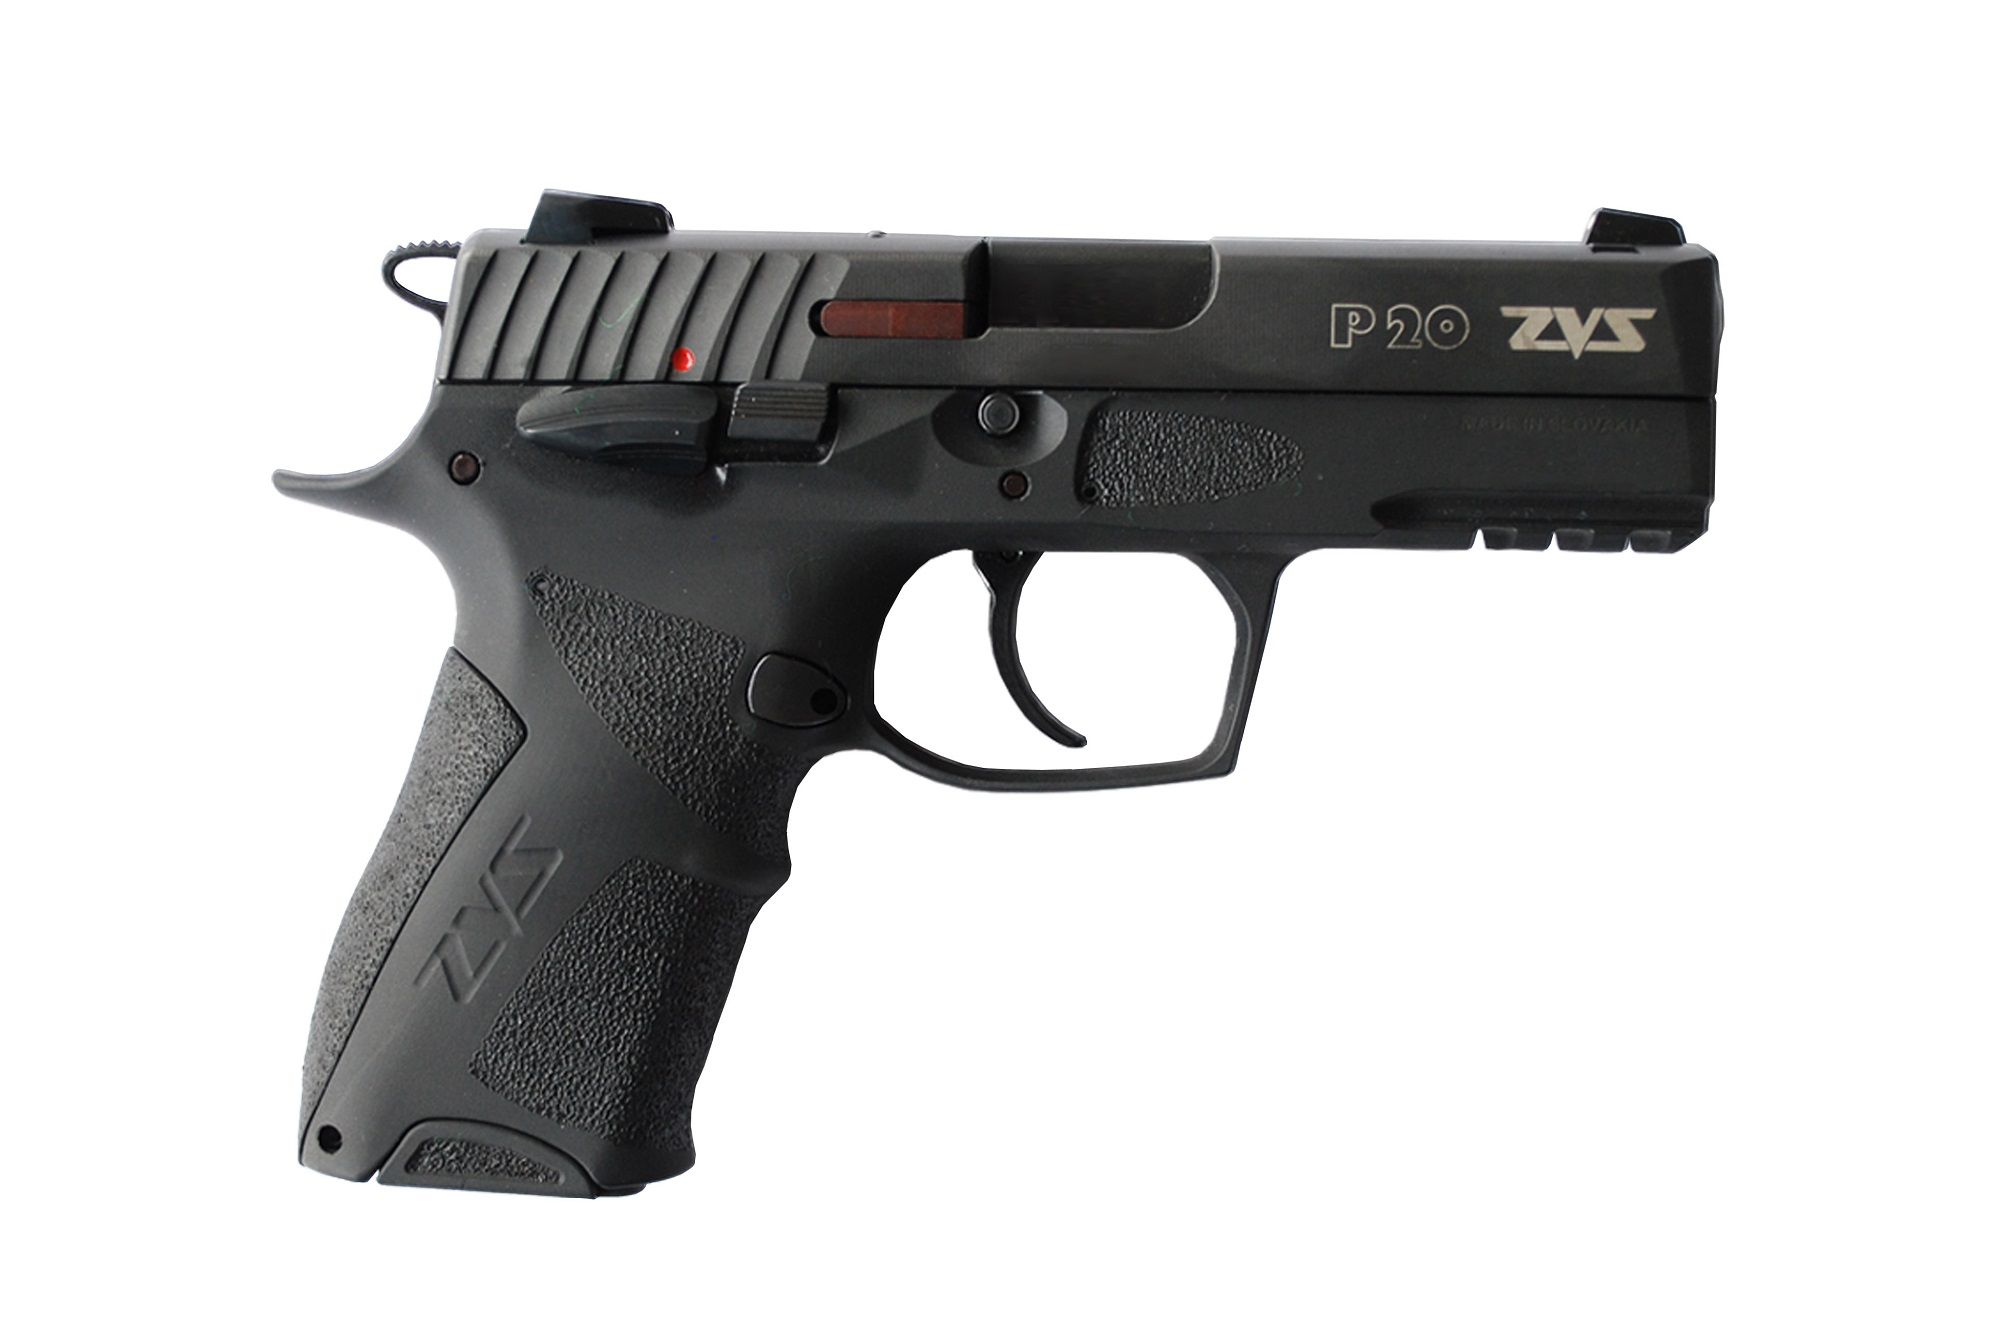 The P20 pistol is based on a standard Browning/CZ type working system